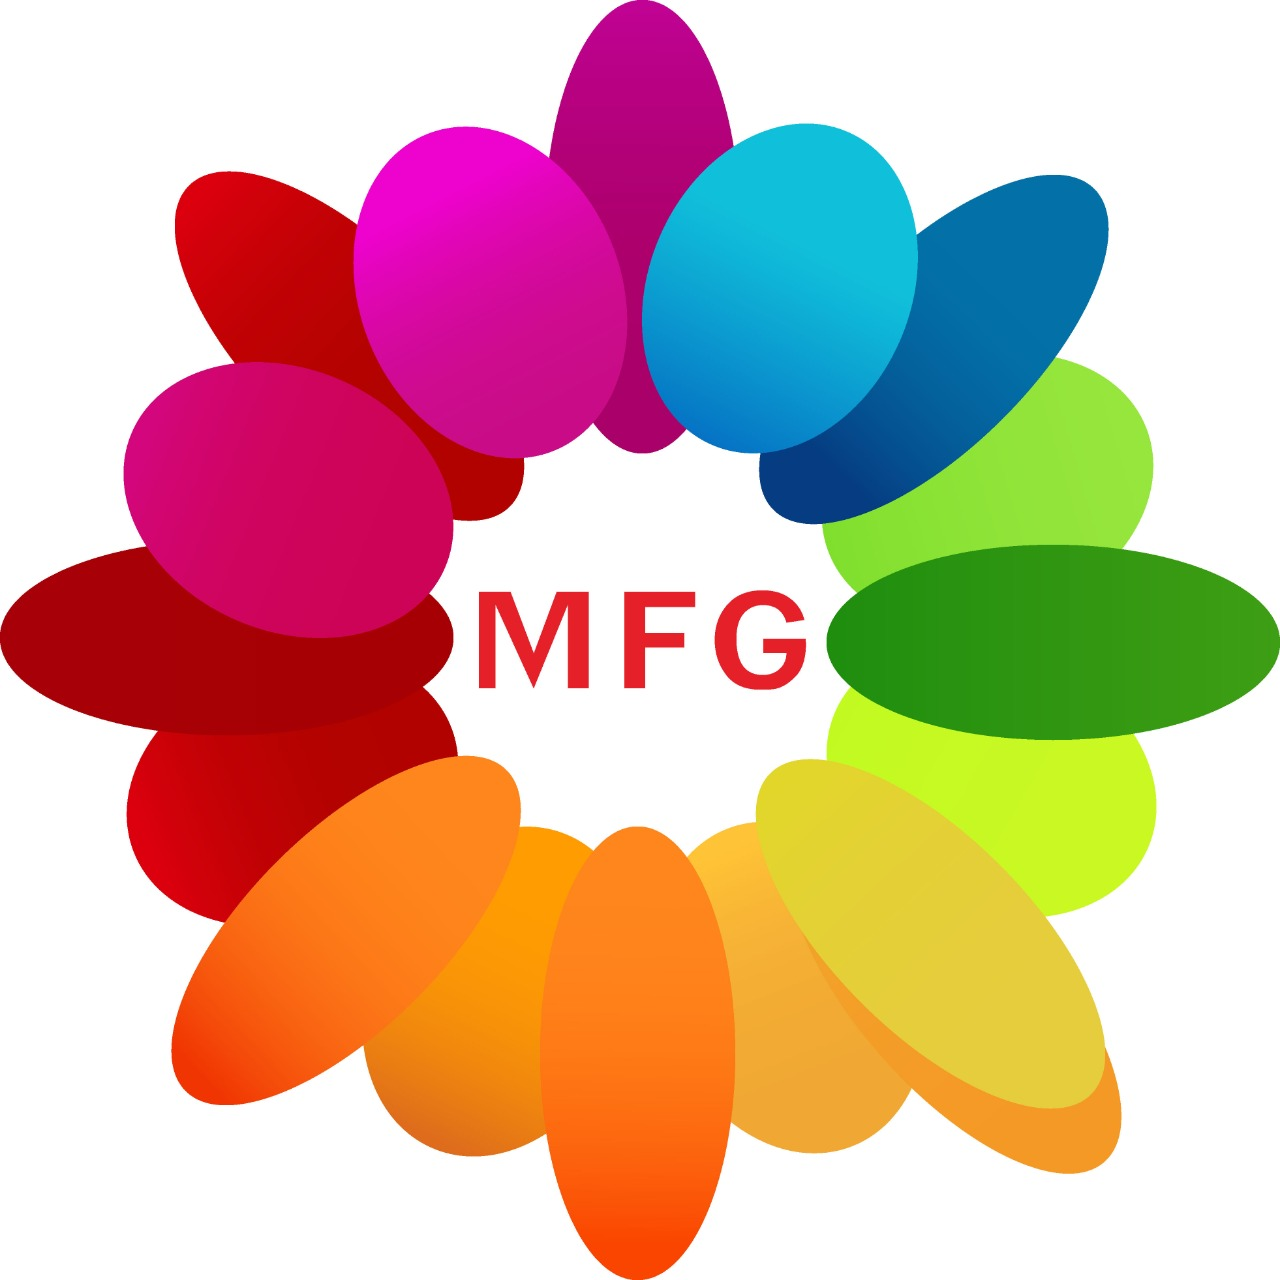 chocolate truffle 1 kg fresh cream premium quality cake